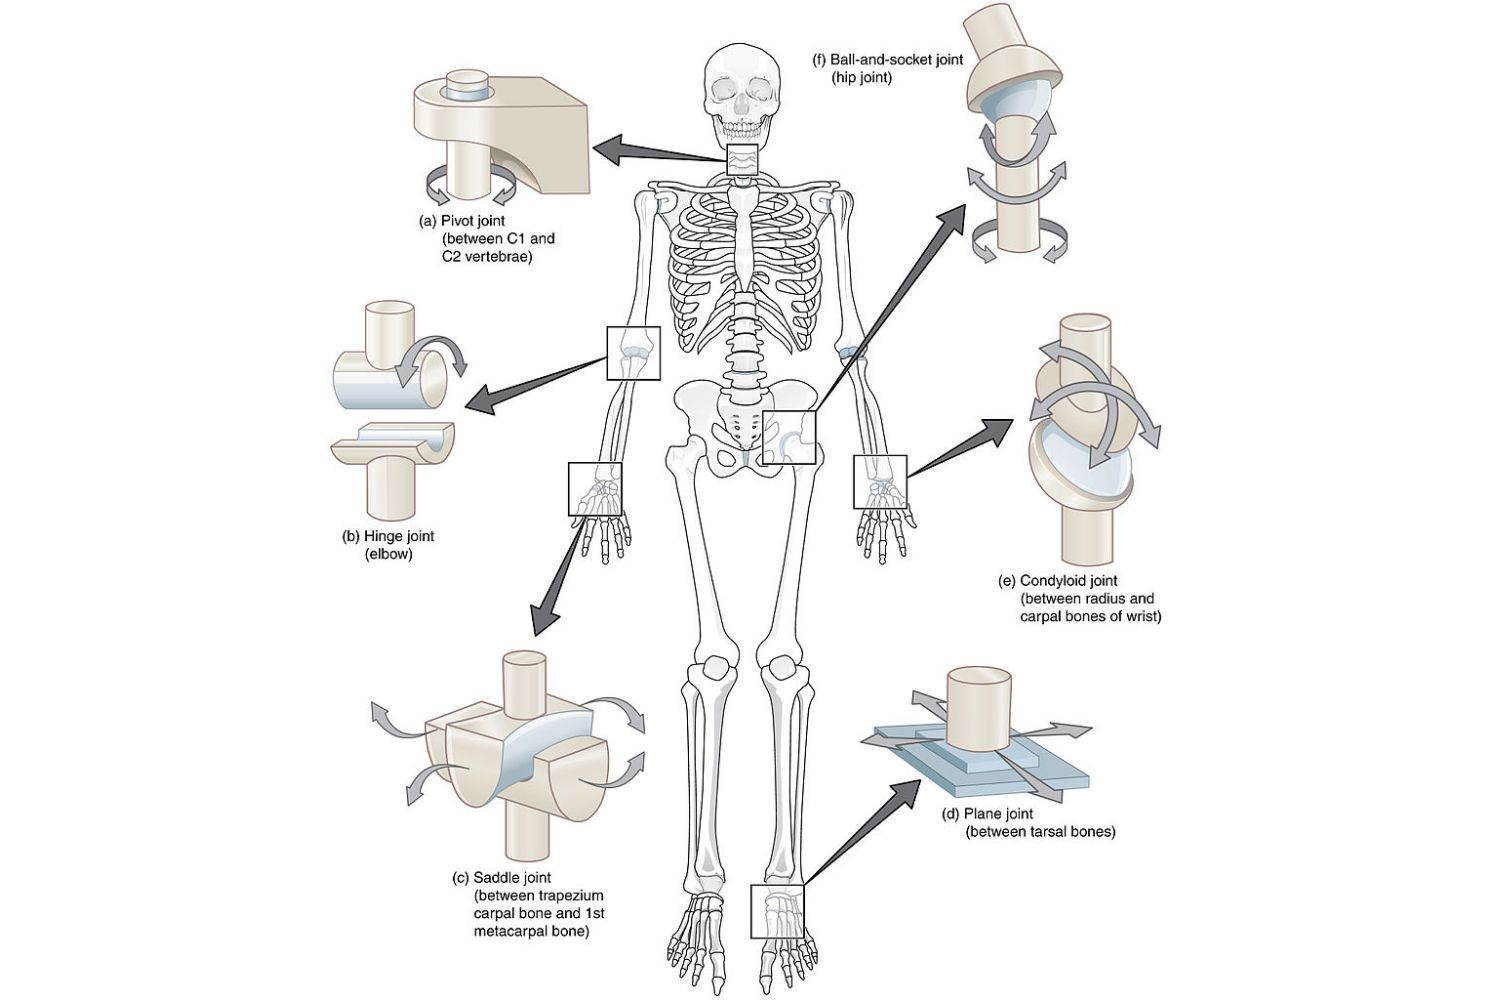 Types Of Joints In The Body